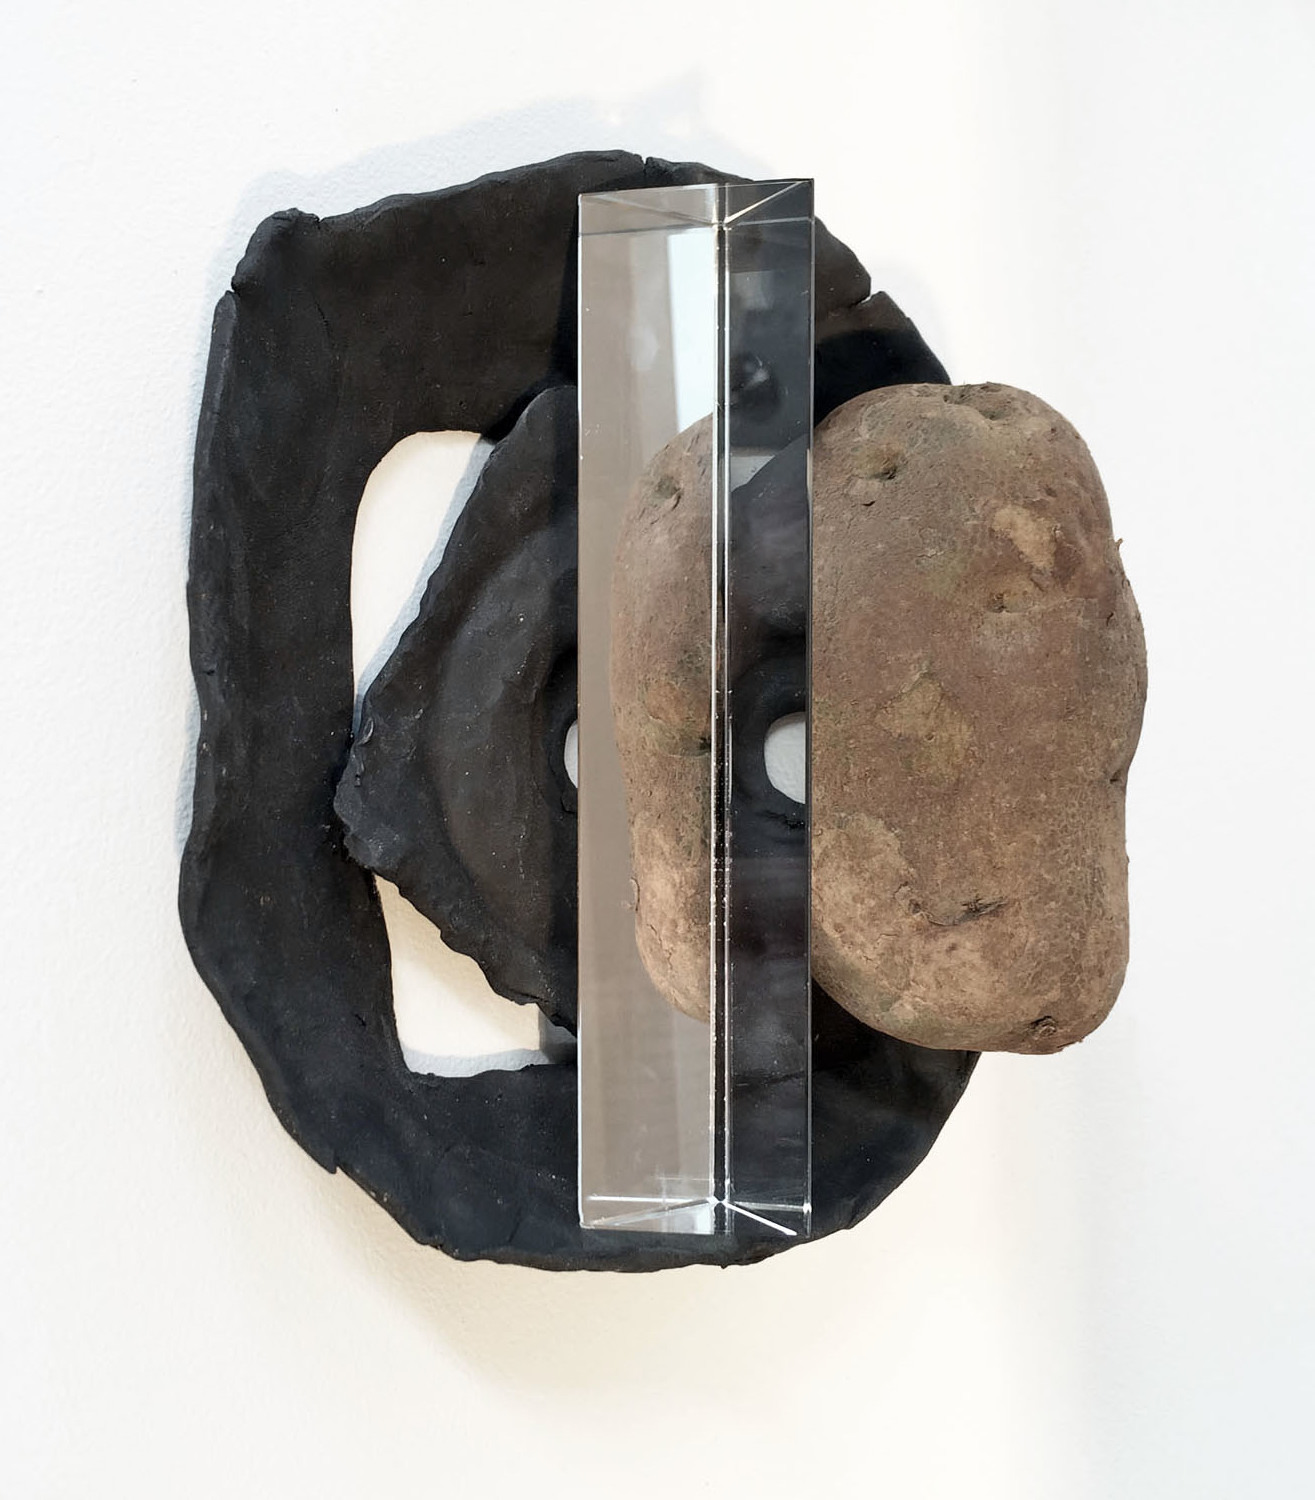 Harvest , 2015, ceramic, glass prism, potato, 4.5 x 9 x 7.5 inches